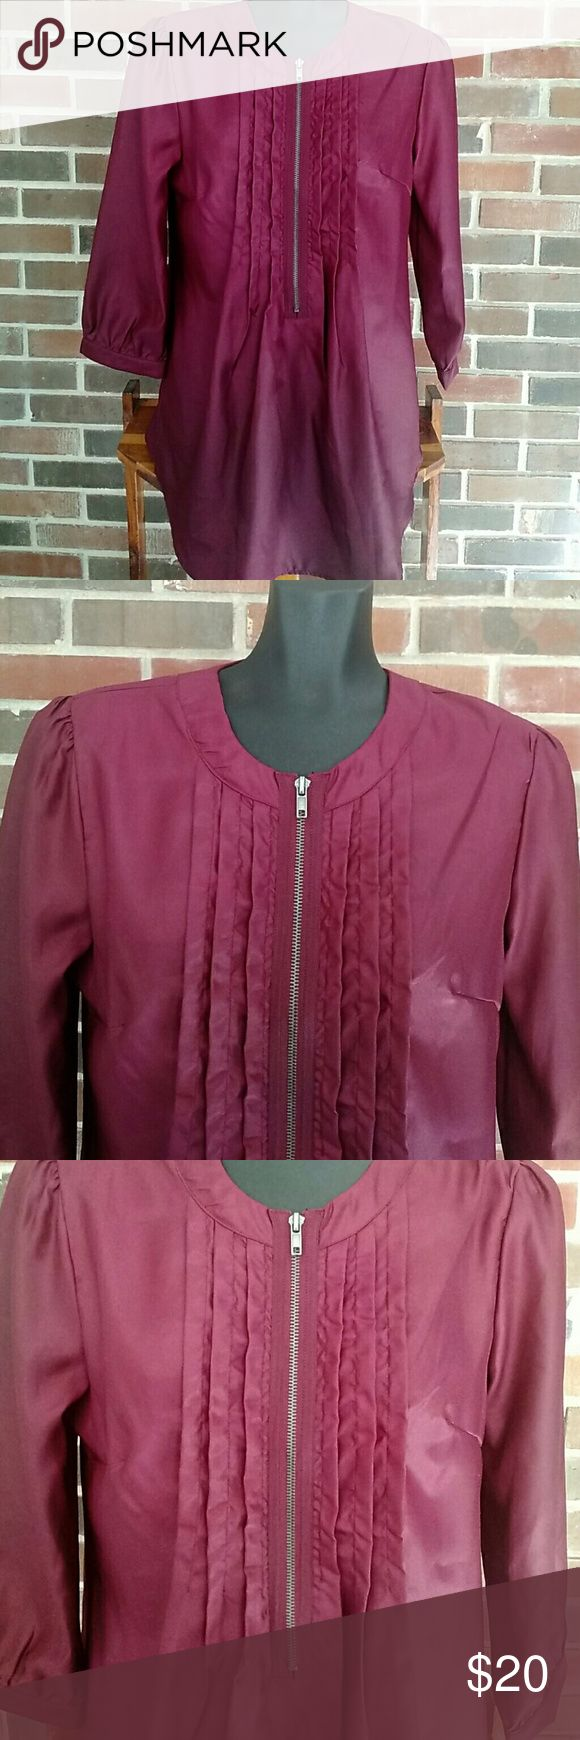 "LEL zipper tunic ""long elegant legs"" Size m, lightly loved, great tunic length, fully working front zipper, 3/4 sleeves. This top is designed for tall women, but works great as a longer tunic/dress on shorter. Maroon in color. Long Elegant Legs Tops Blouses"